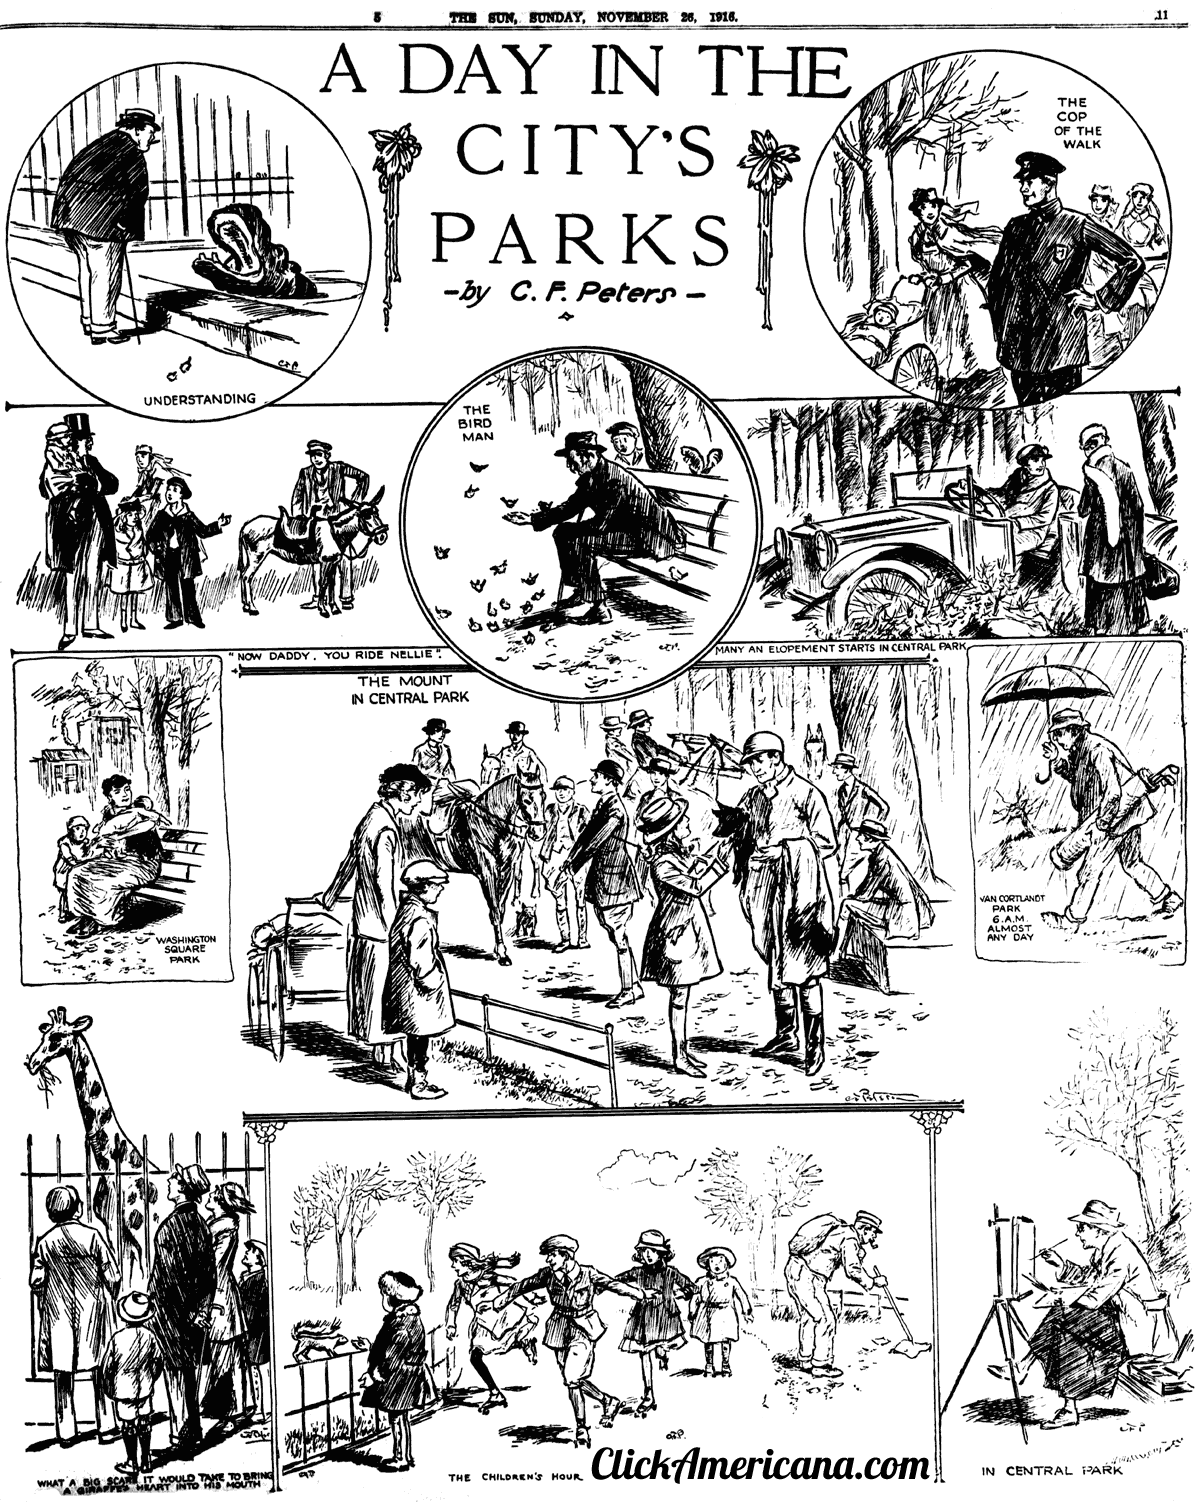 A day in NYC's parks (1916)